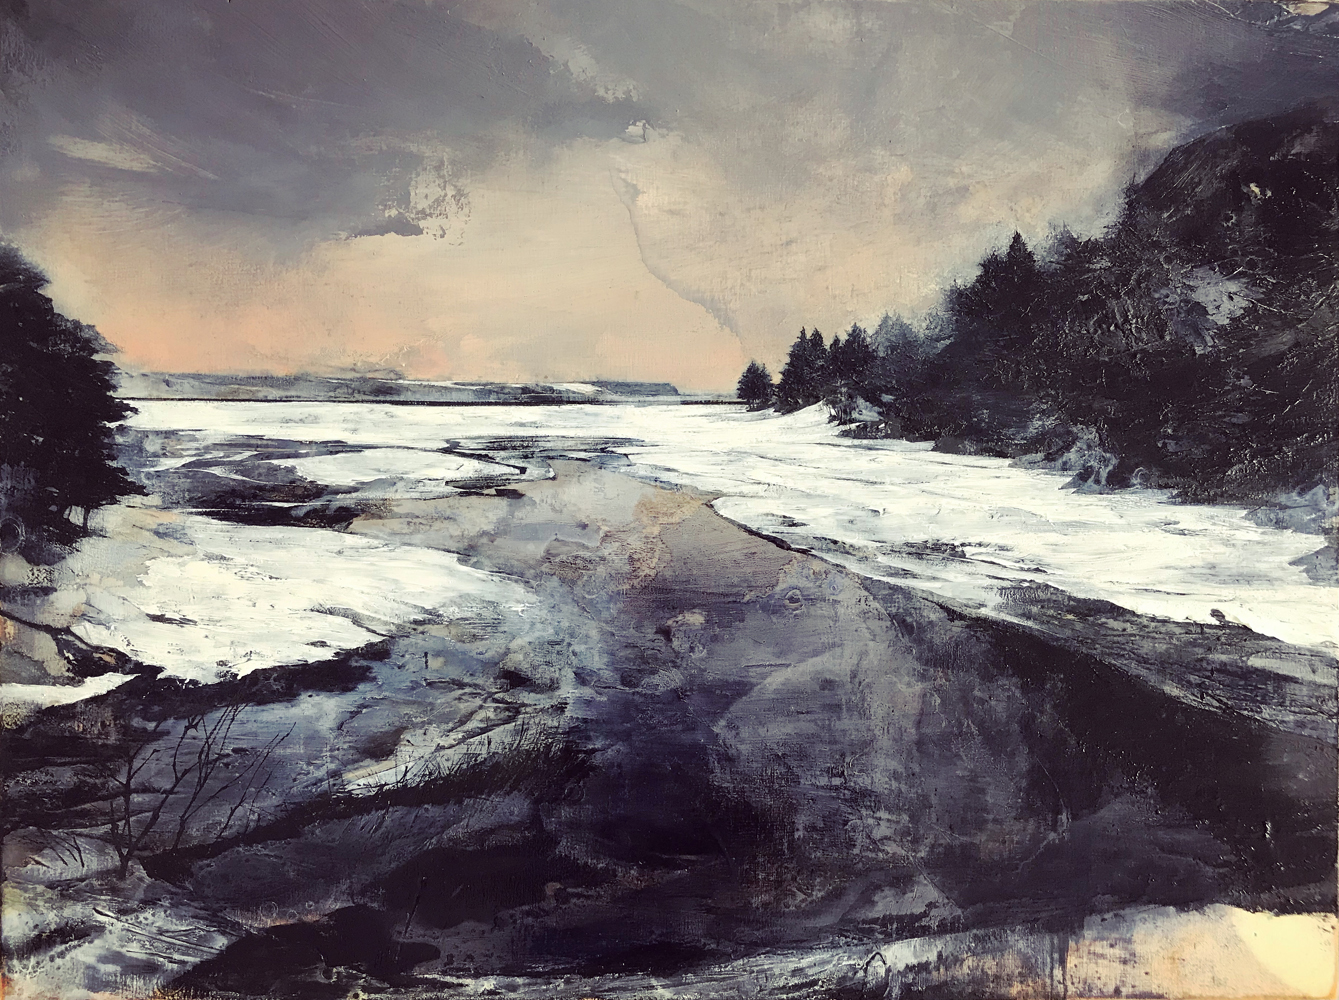 Mark Thompson, Arduous Clarity, 2020, oil on panel, 18 x 24 inches, $3750.